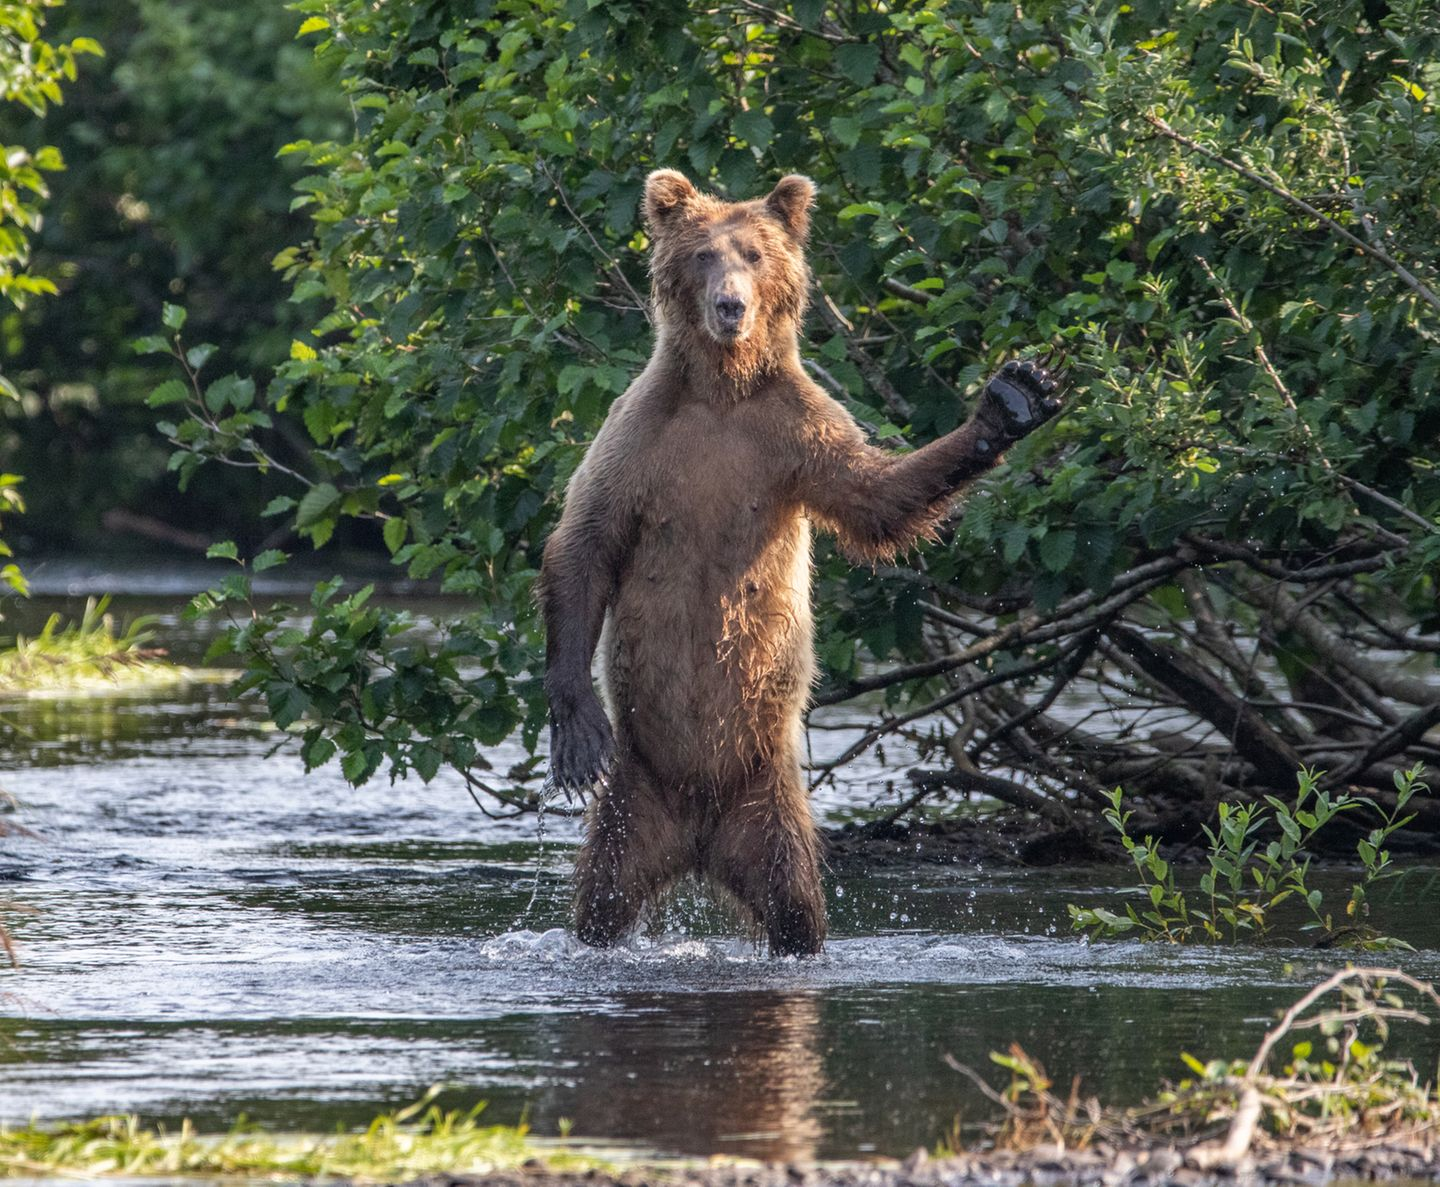 Comedy Wildlife Awards 2020: Bär